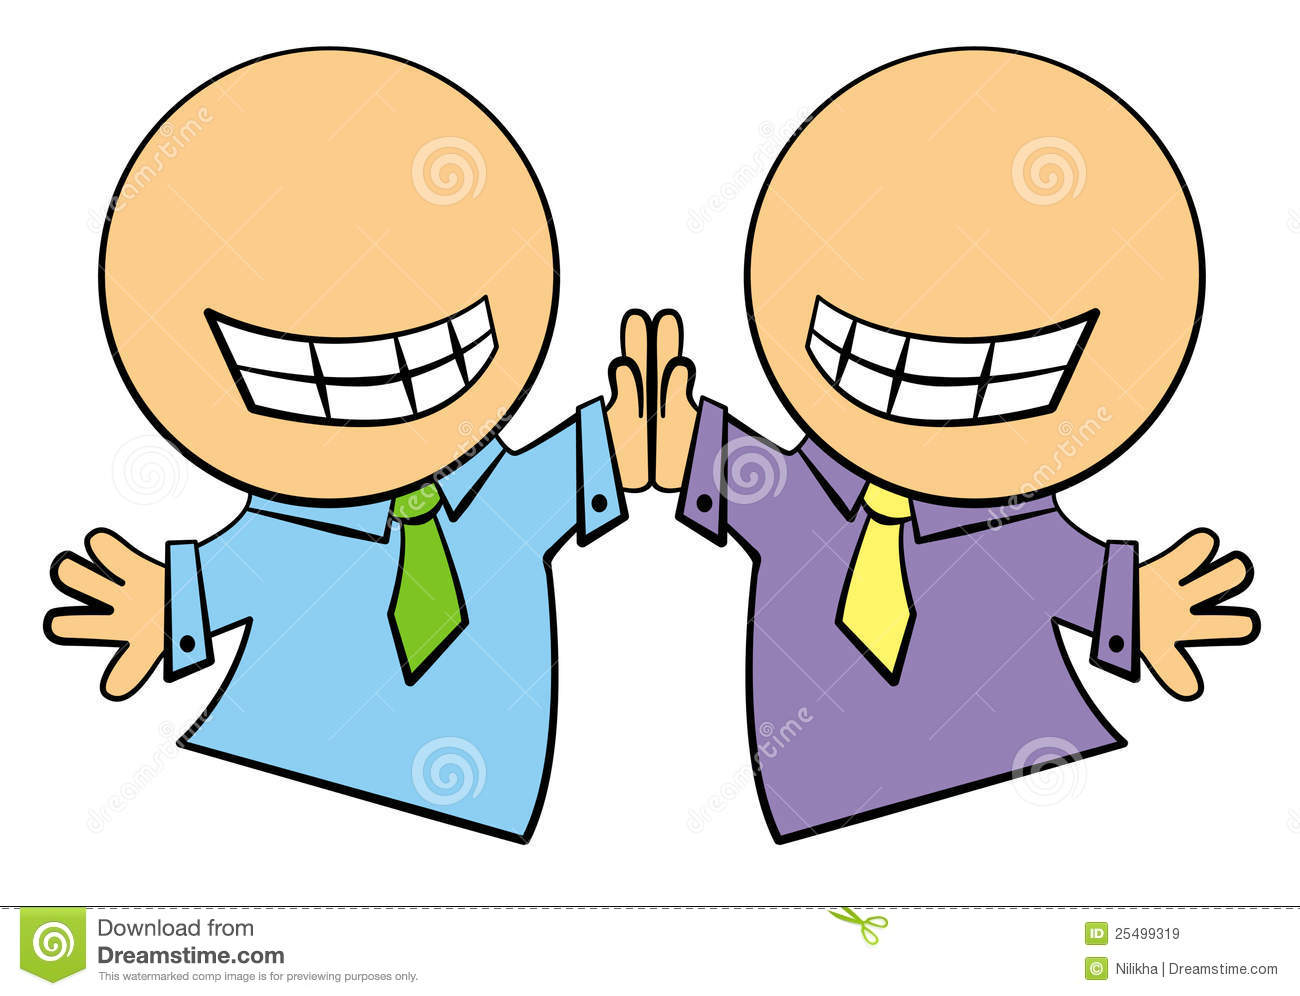 Two cartoon business characters giving each others high fives.